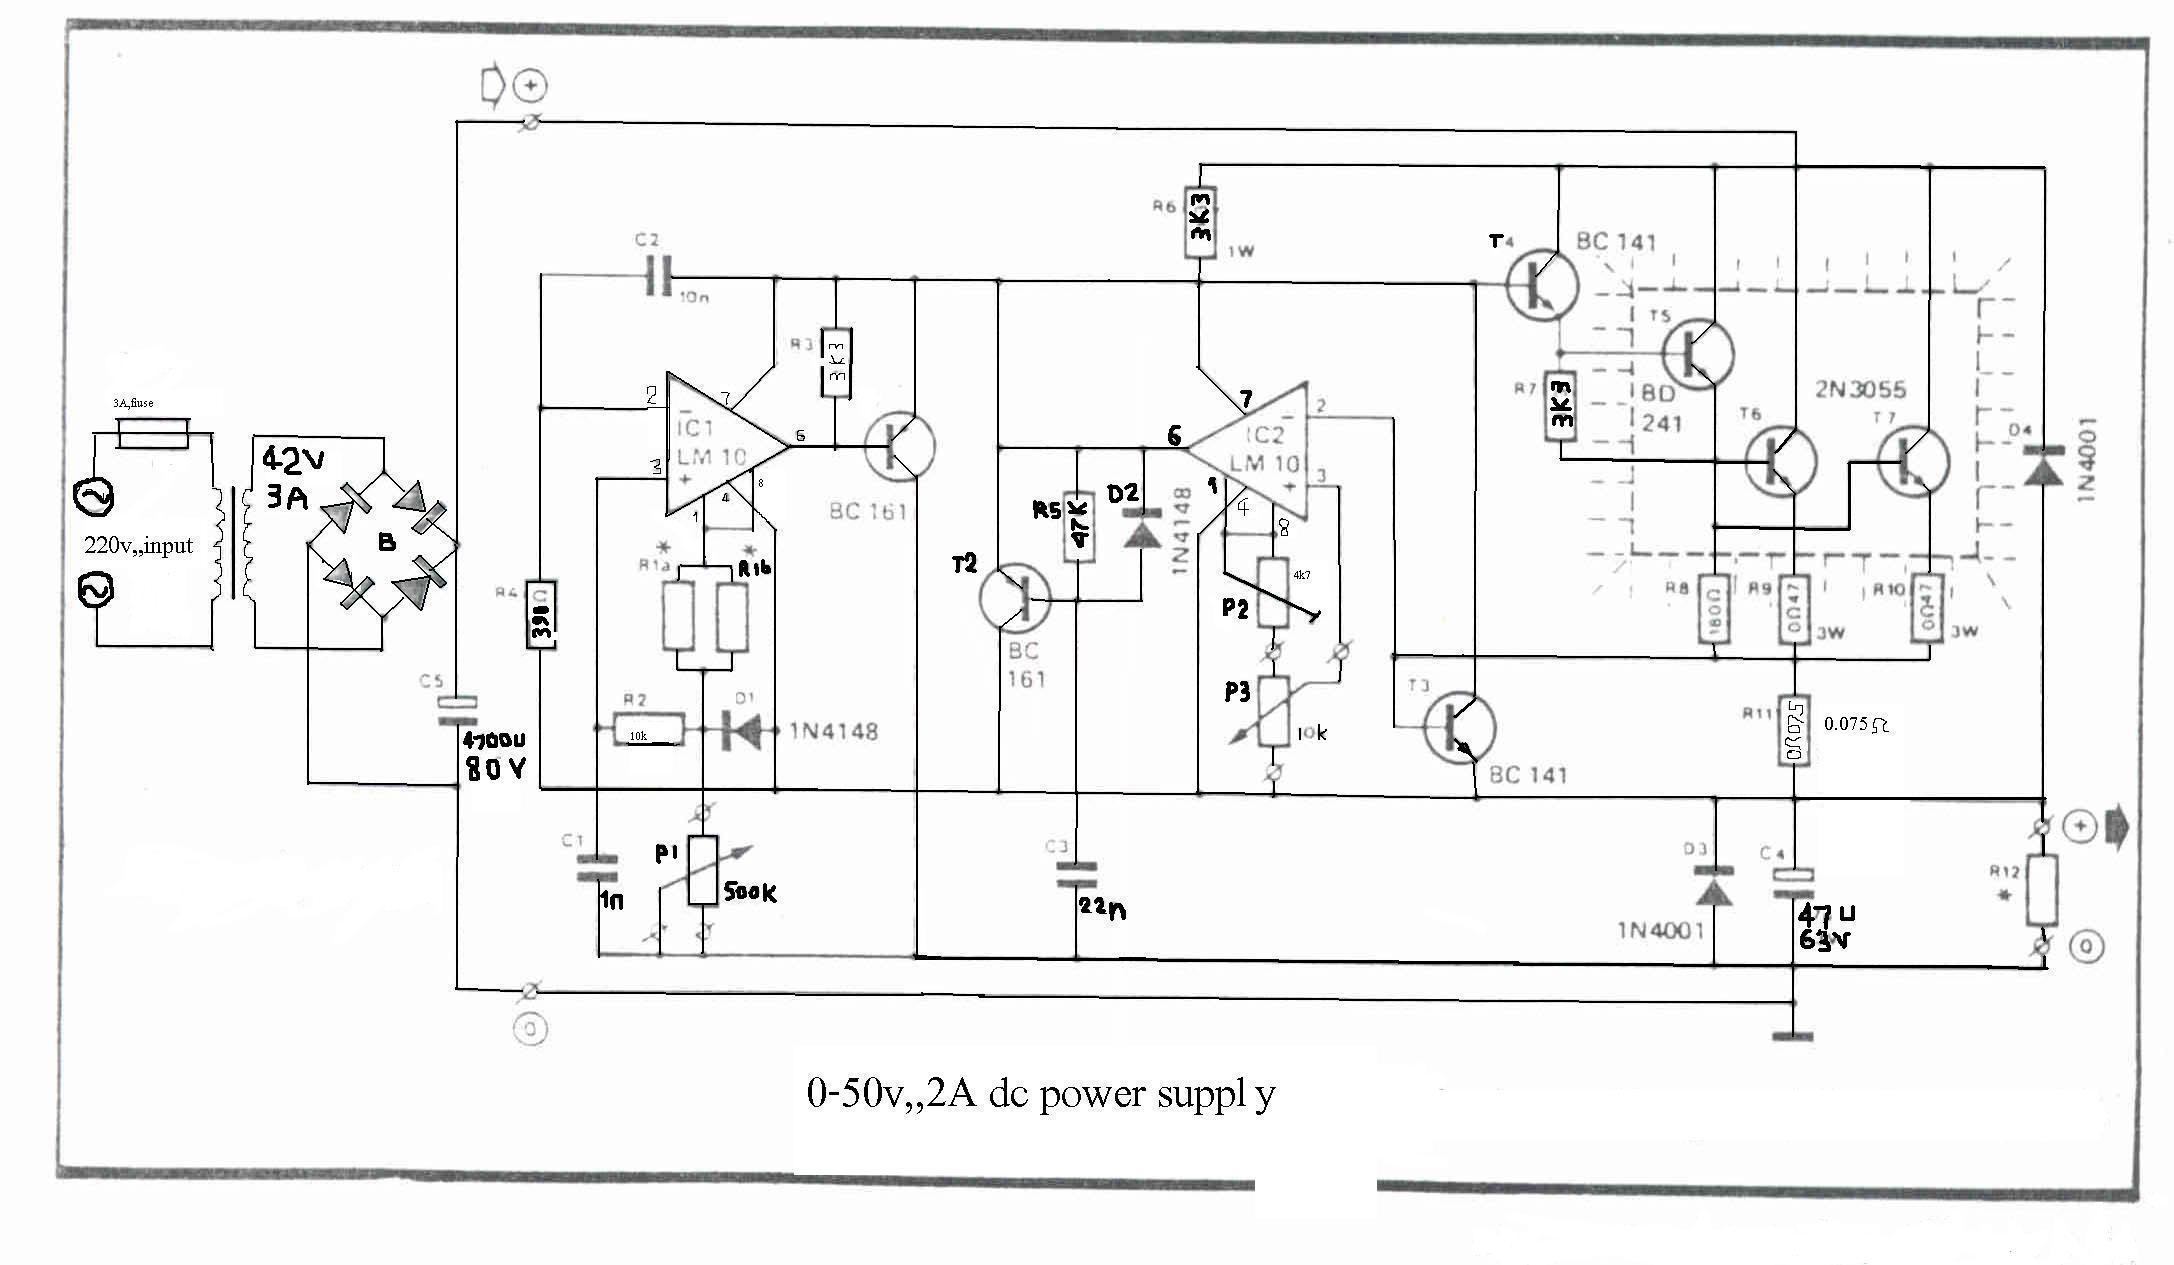 How to build 0-50V 2A Bench power supply. Circuit diagram